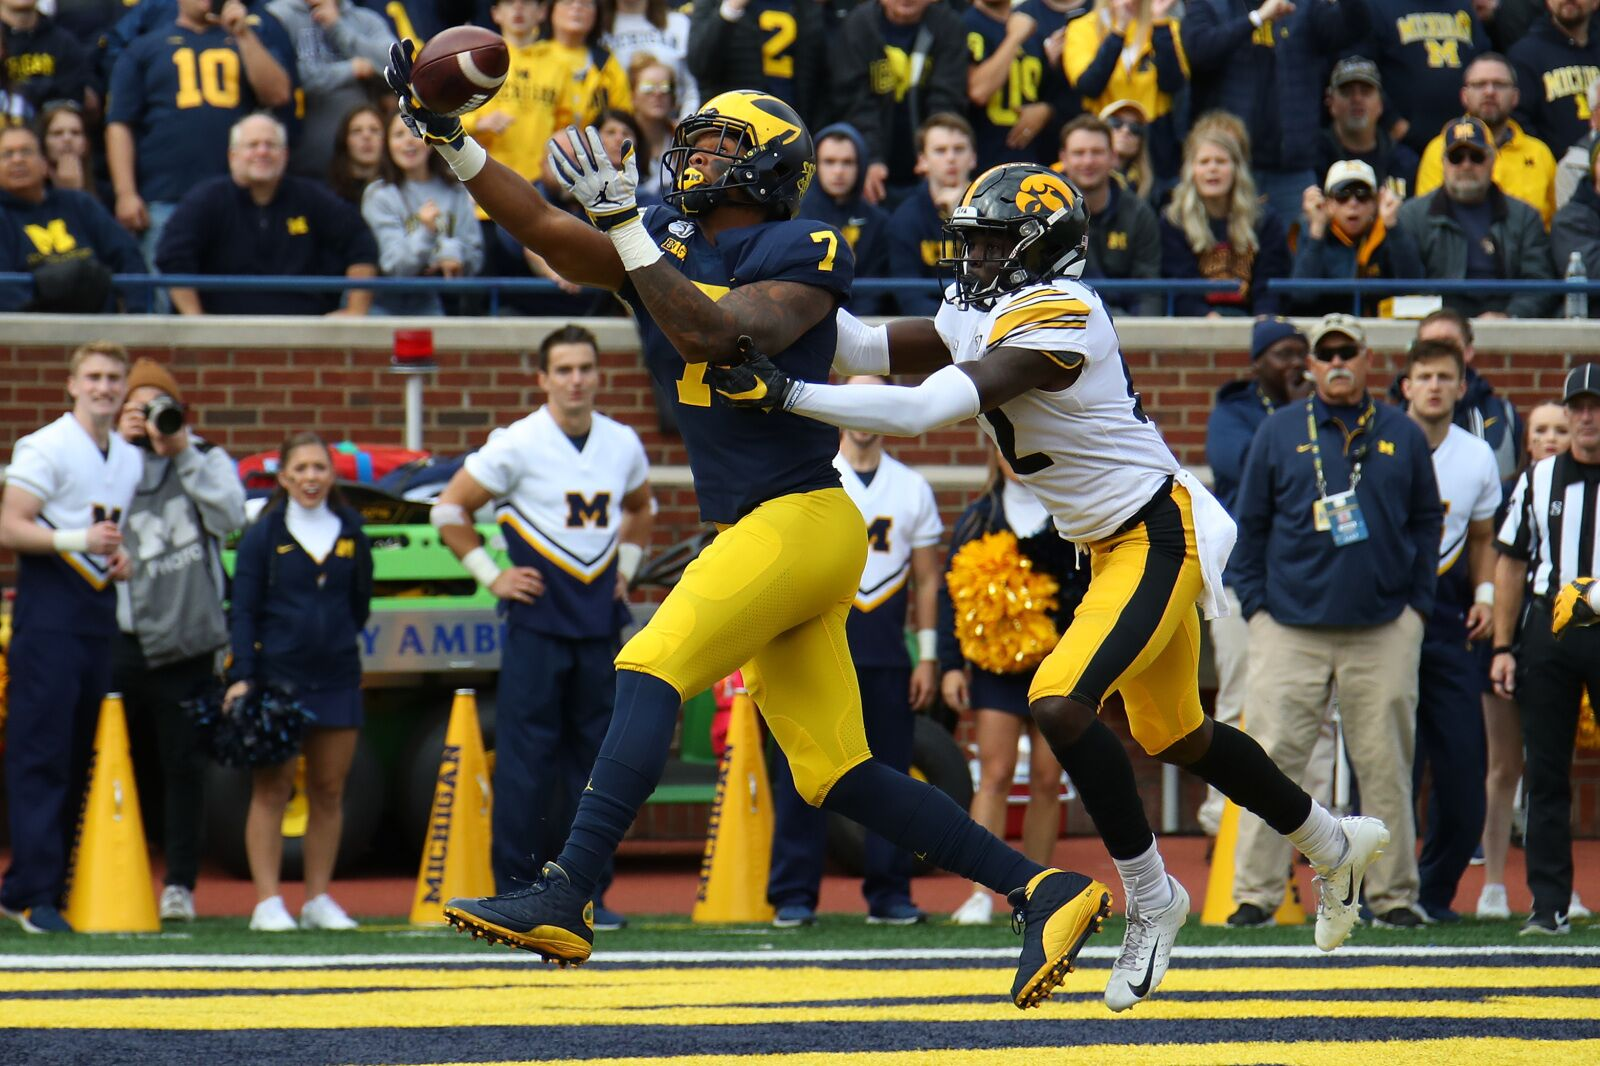 Michigan Football: Tarik Black transfer is disappointing, not surprising